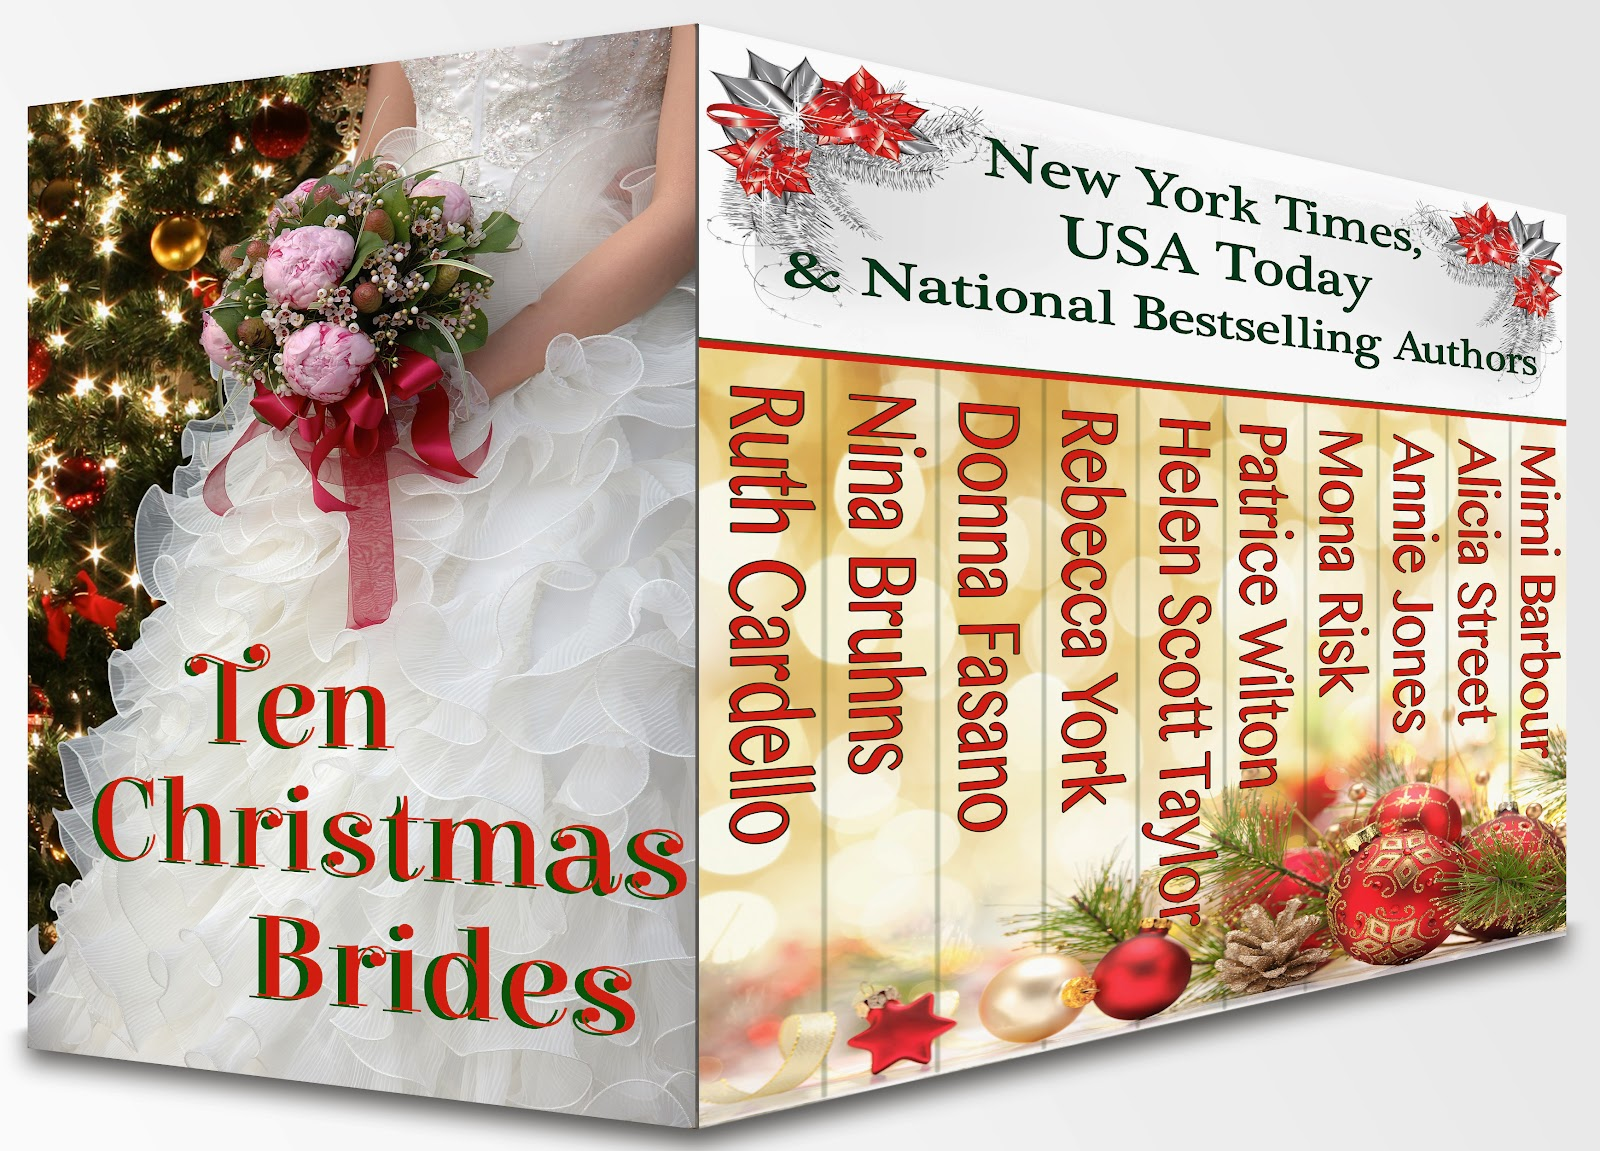 join ten new york times usa today and national best selling authors to celebrate the holiday season with a boxed set of stories brimming with emotion - Best Christmas Novels